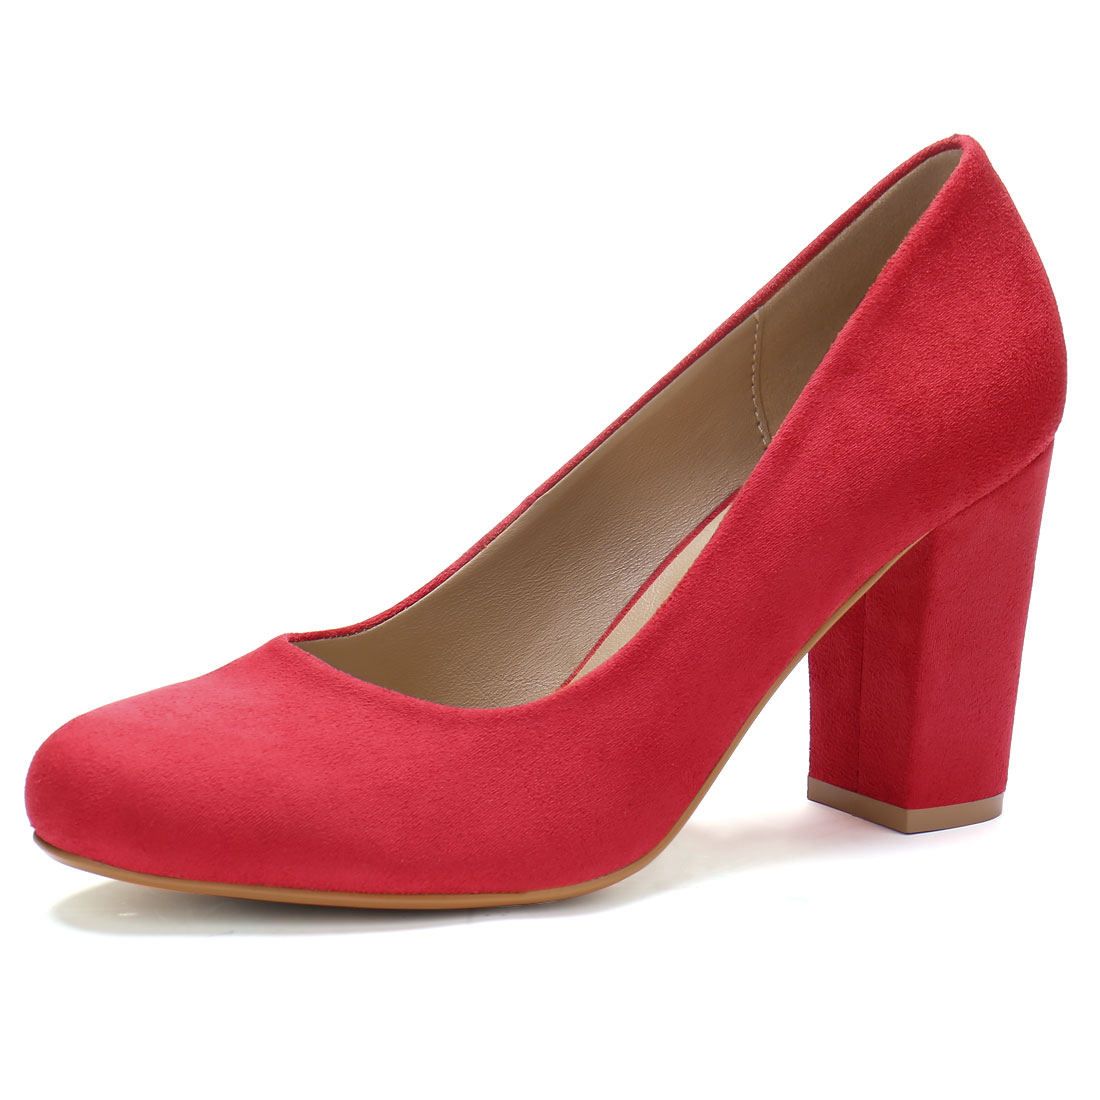 Ladies Rounded Toe High Block Heel Classic Pumps Red US 6 - image 7 of 7